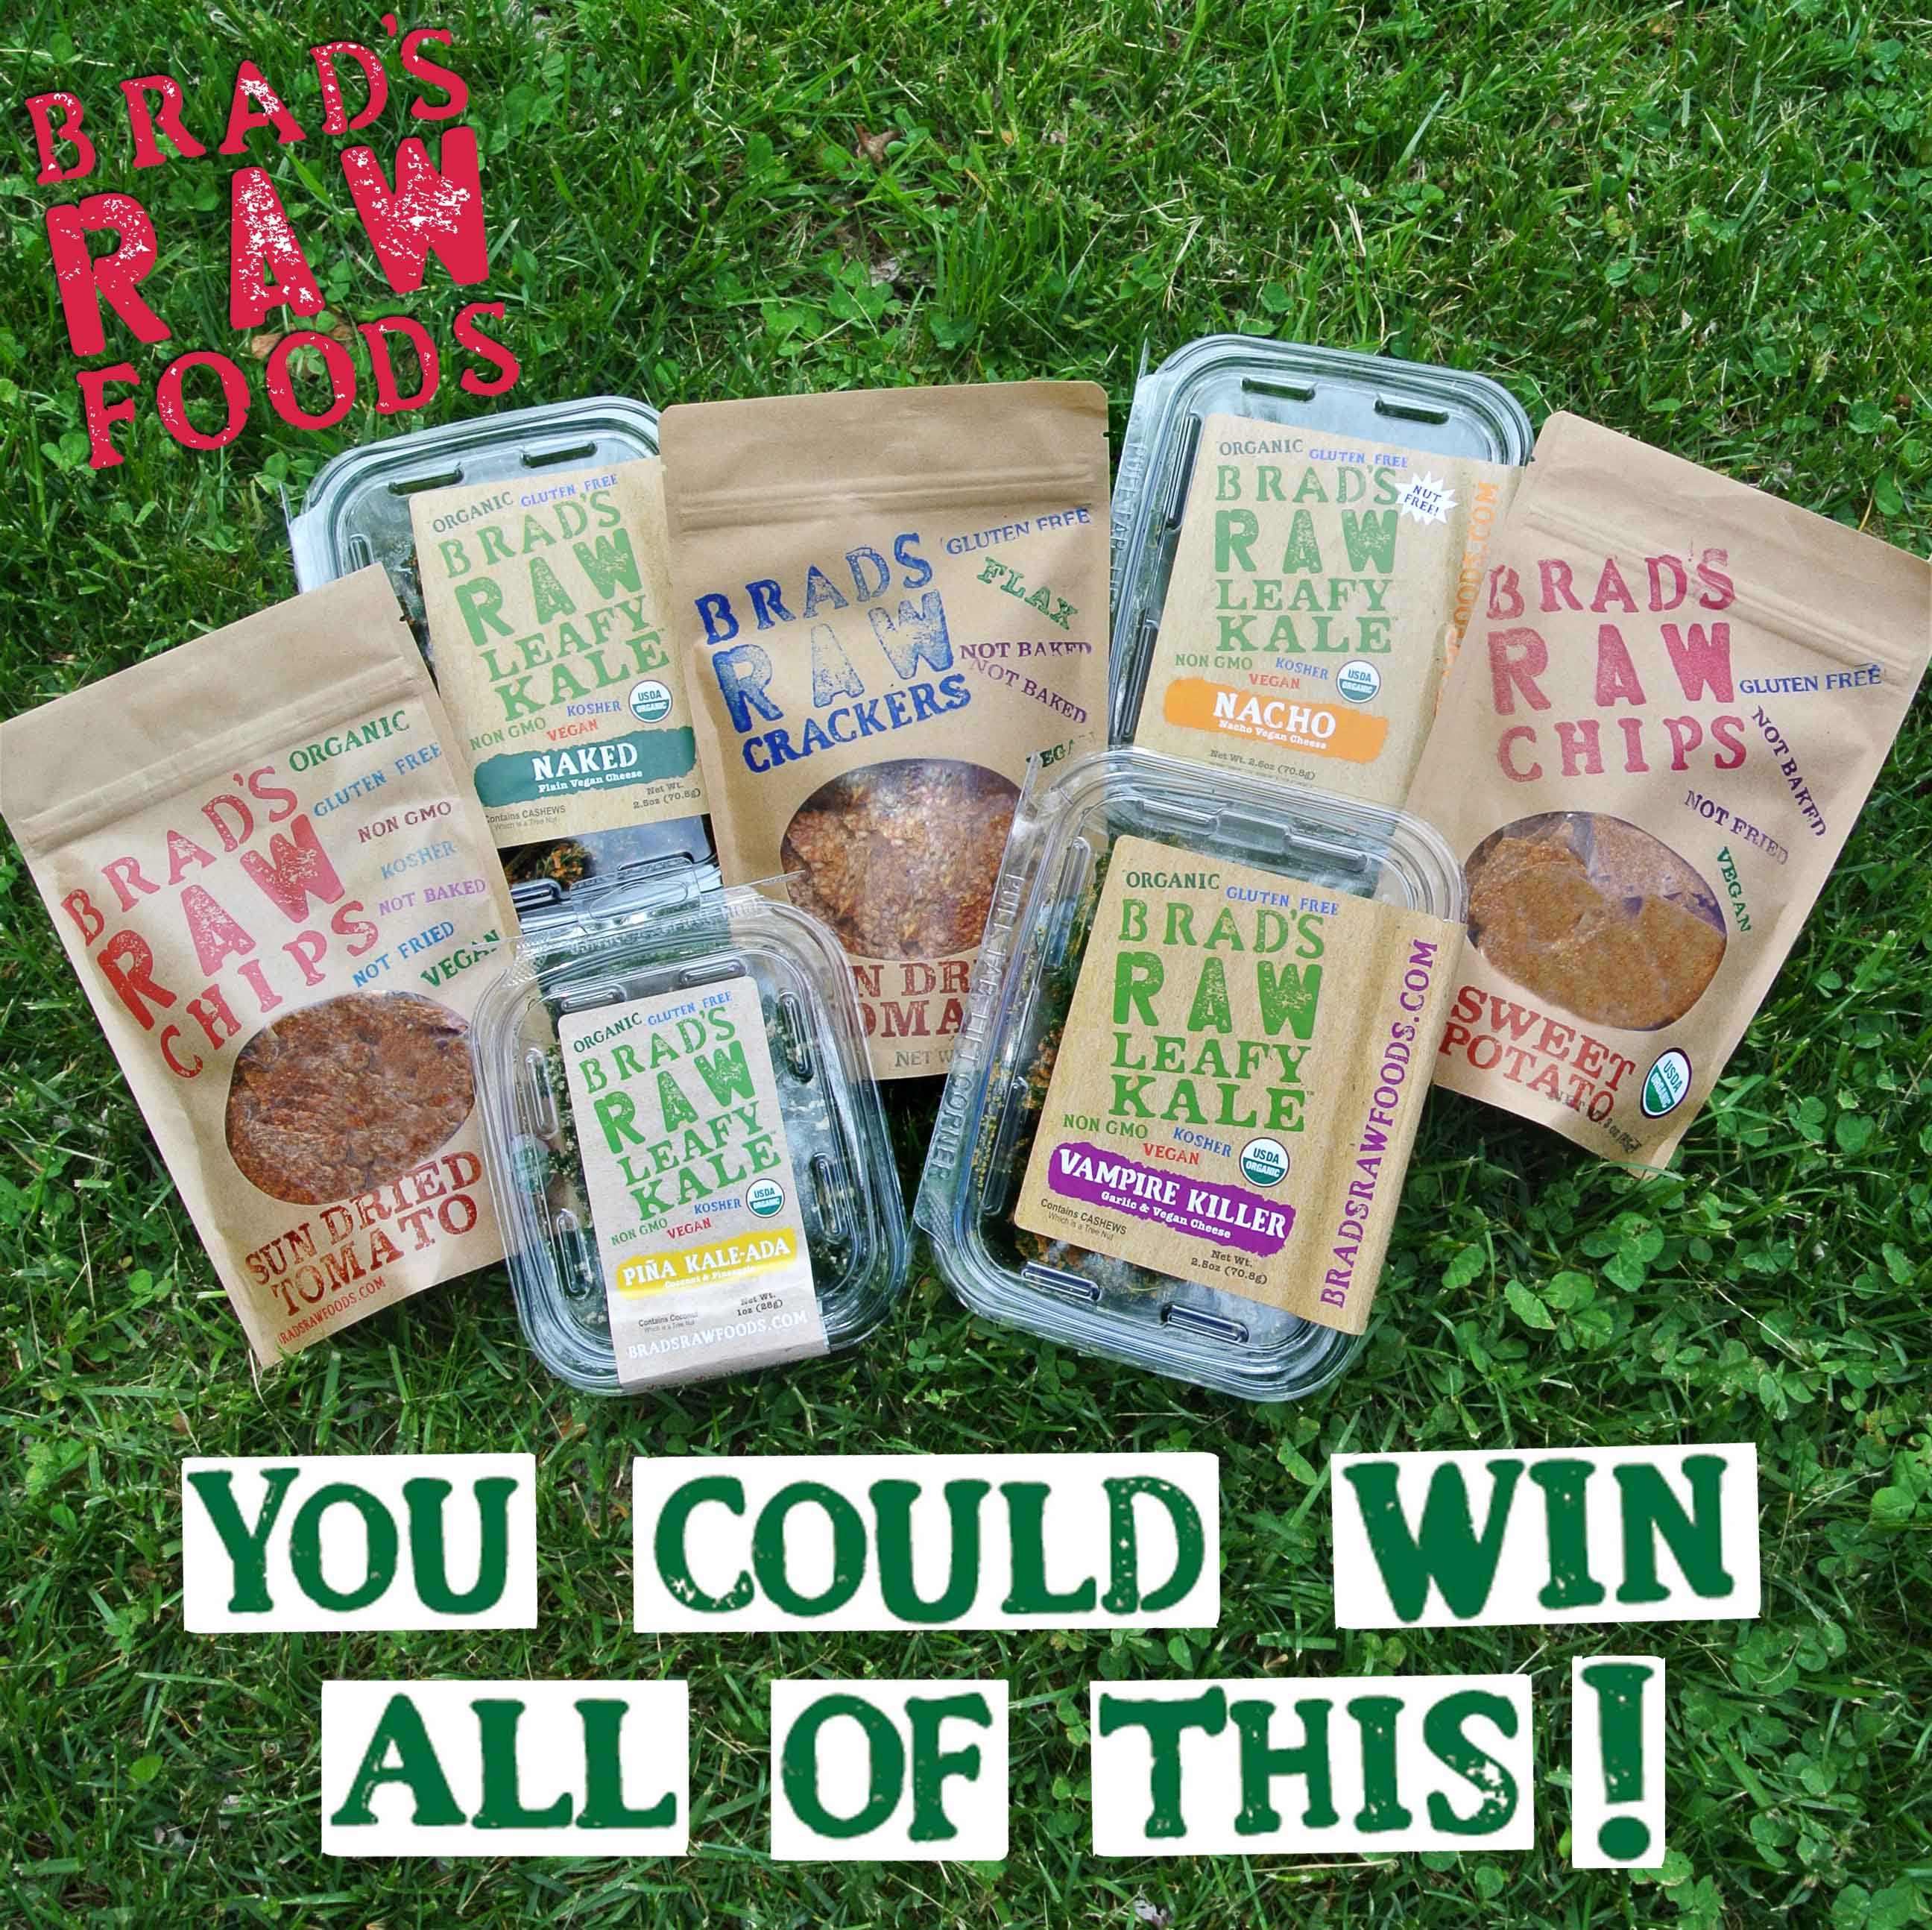 Brad's Raw Foods Giveaway!